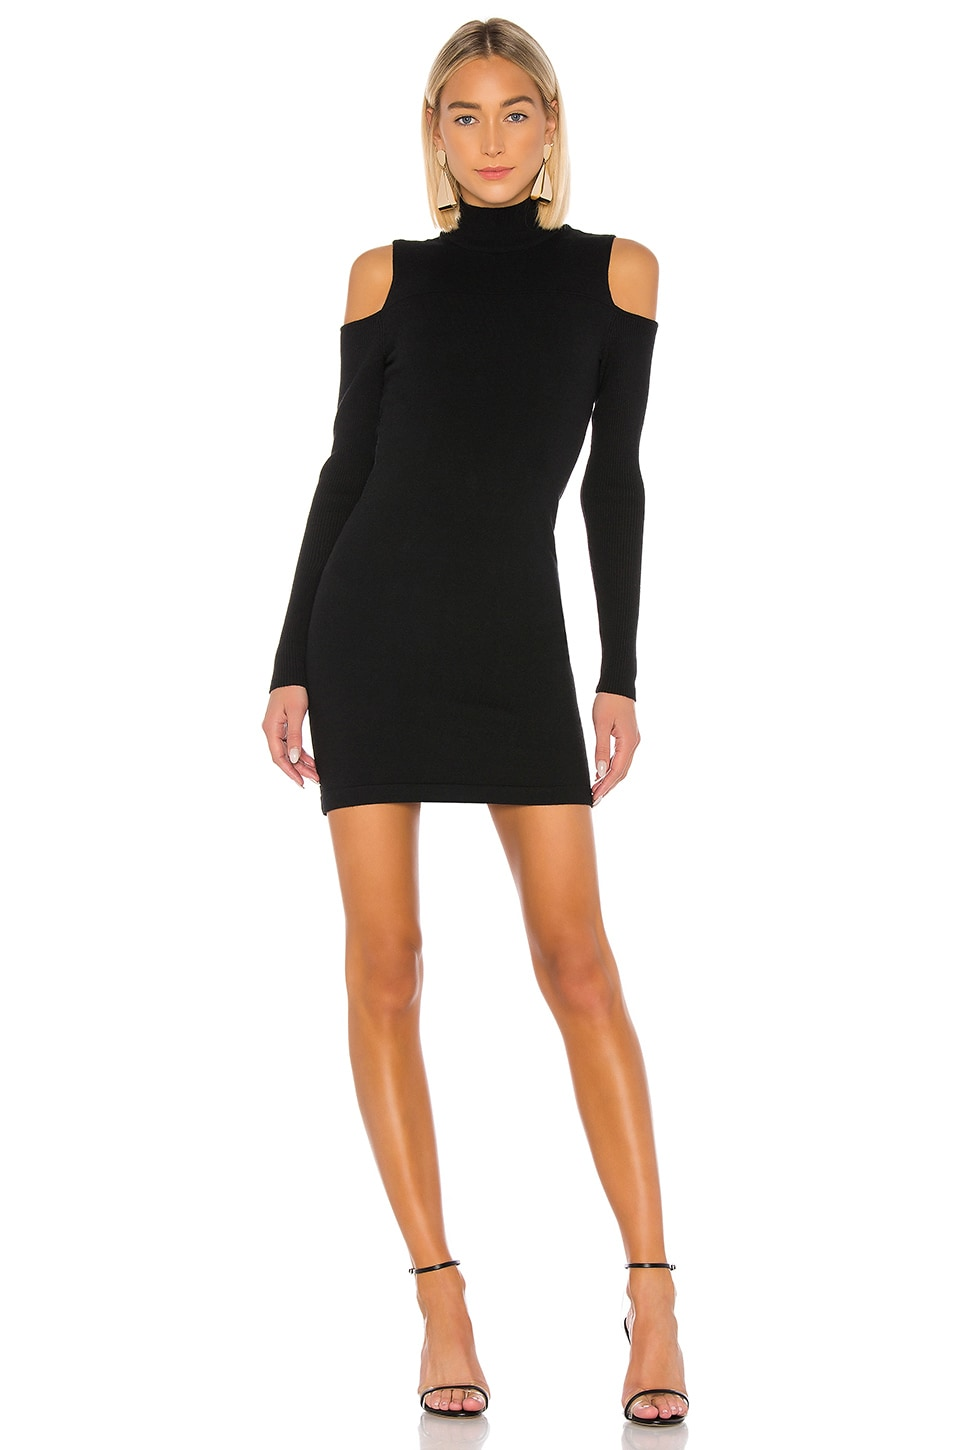 Camila Coelho Taylor Sweater Dress in Black